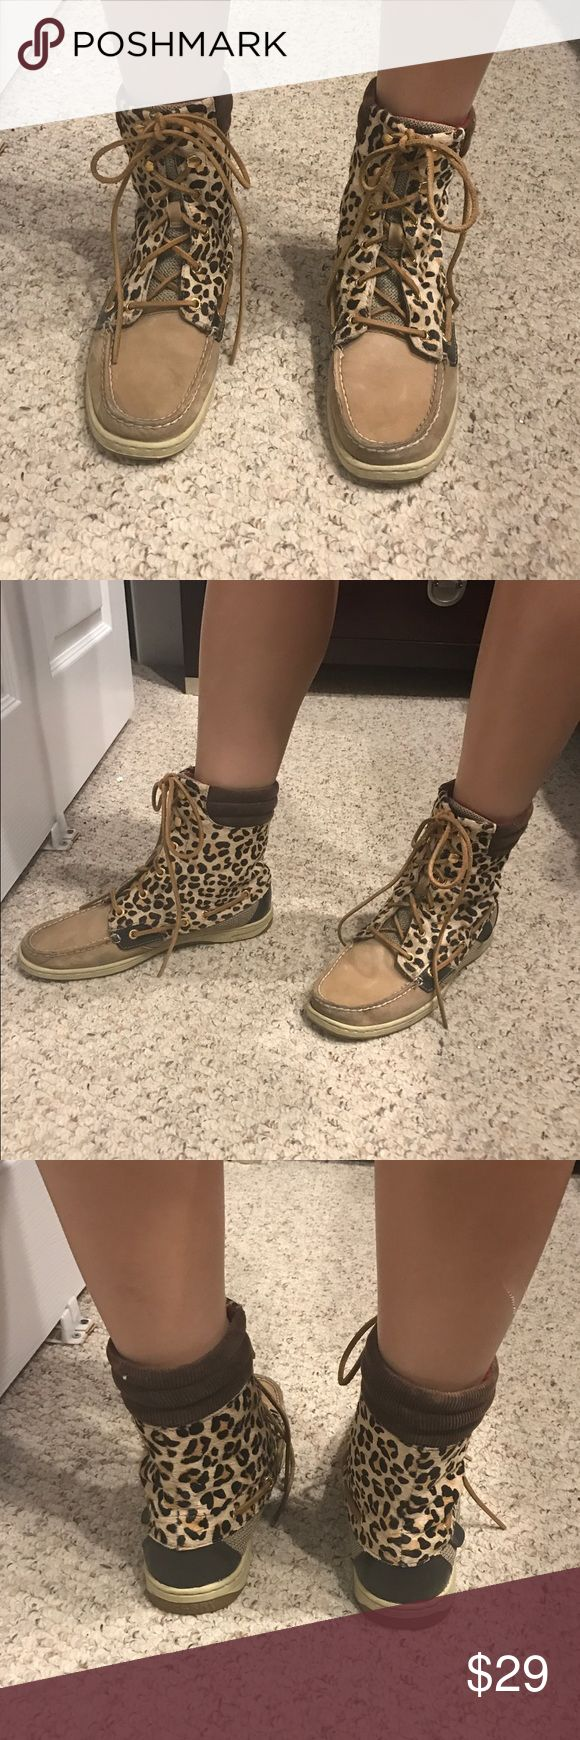 Sperry High Tops Sperry leopard high tops. Good condition. Sperry Shoes Ankle Boots & Booties